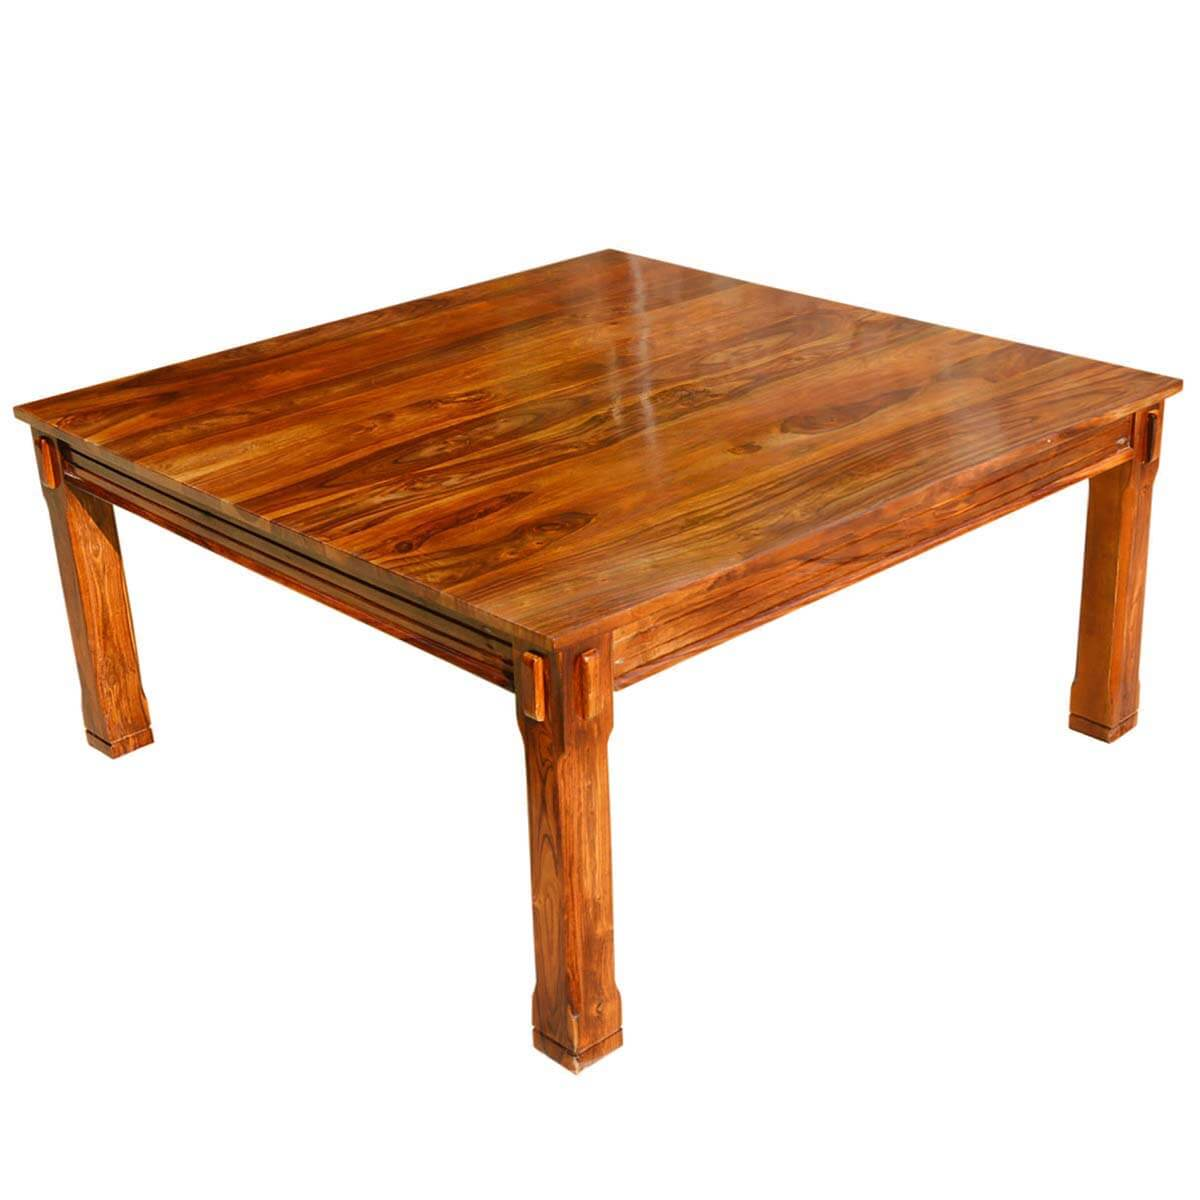 Rustic solid wood square block legs dining table for Solid wood dining table